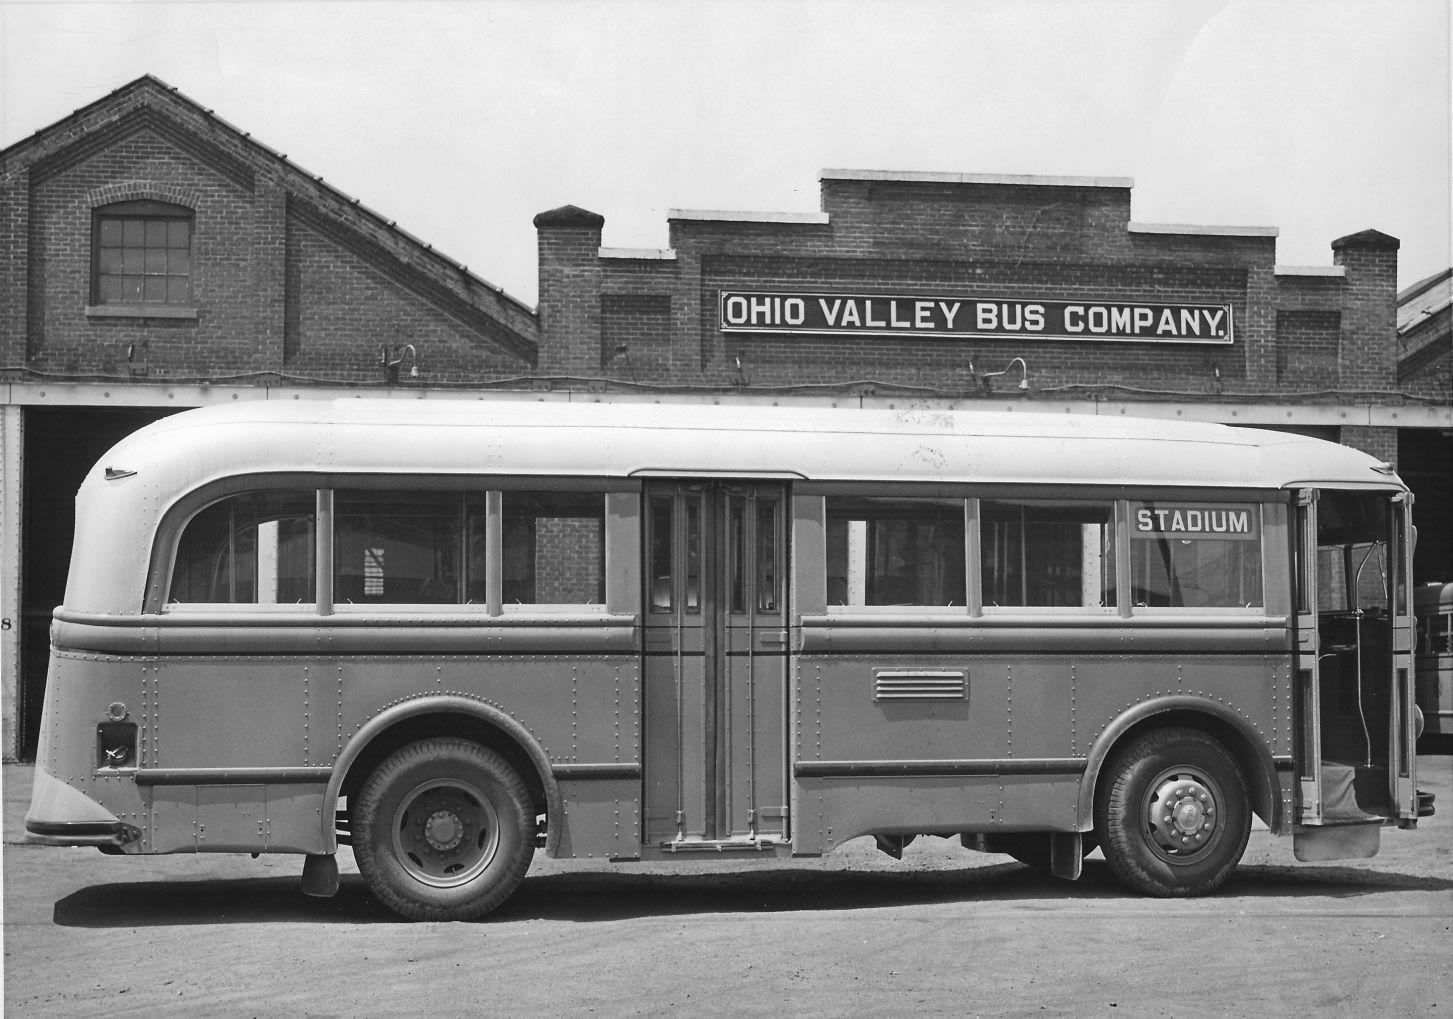 One of the Ohio Valley Bus Company's busses sitting in front of their bus barn located at the corner of 18th Street West and Adams Avenue.